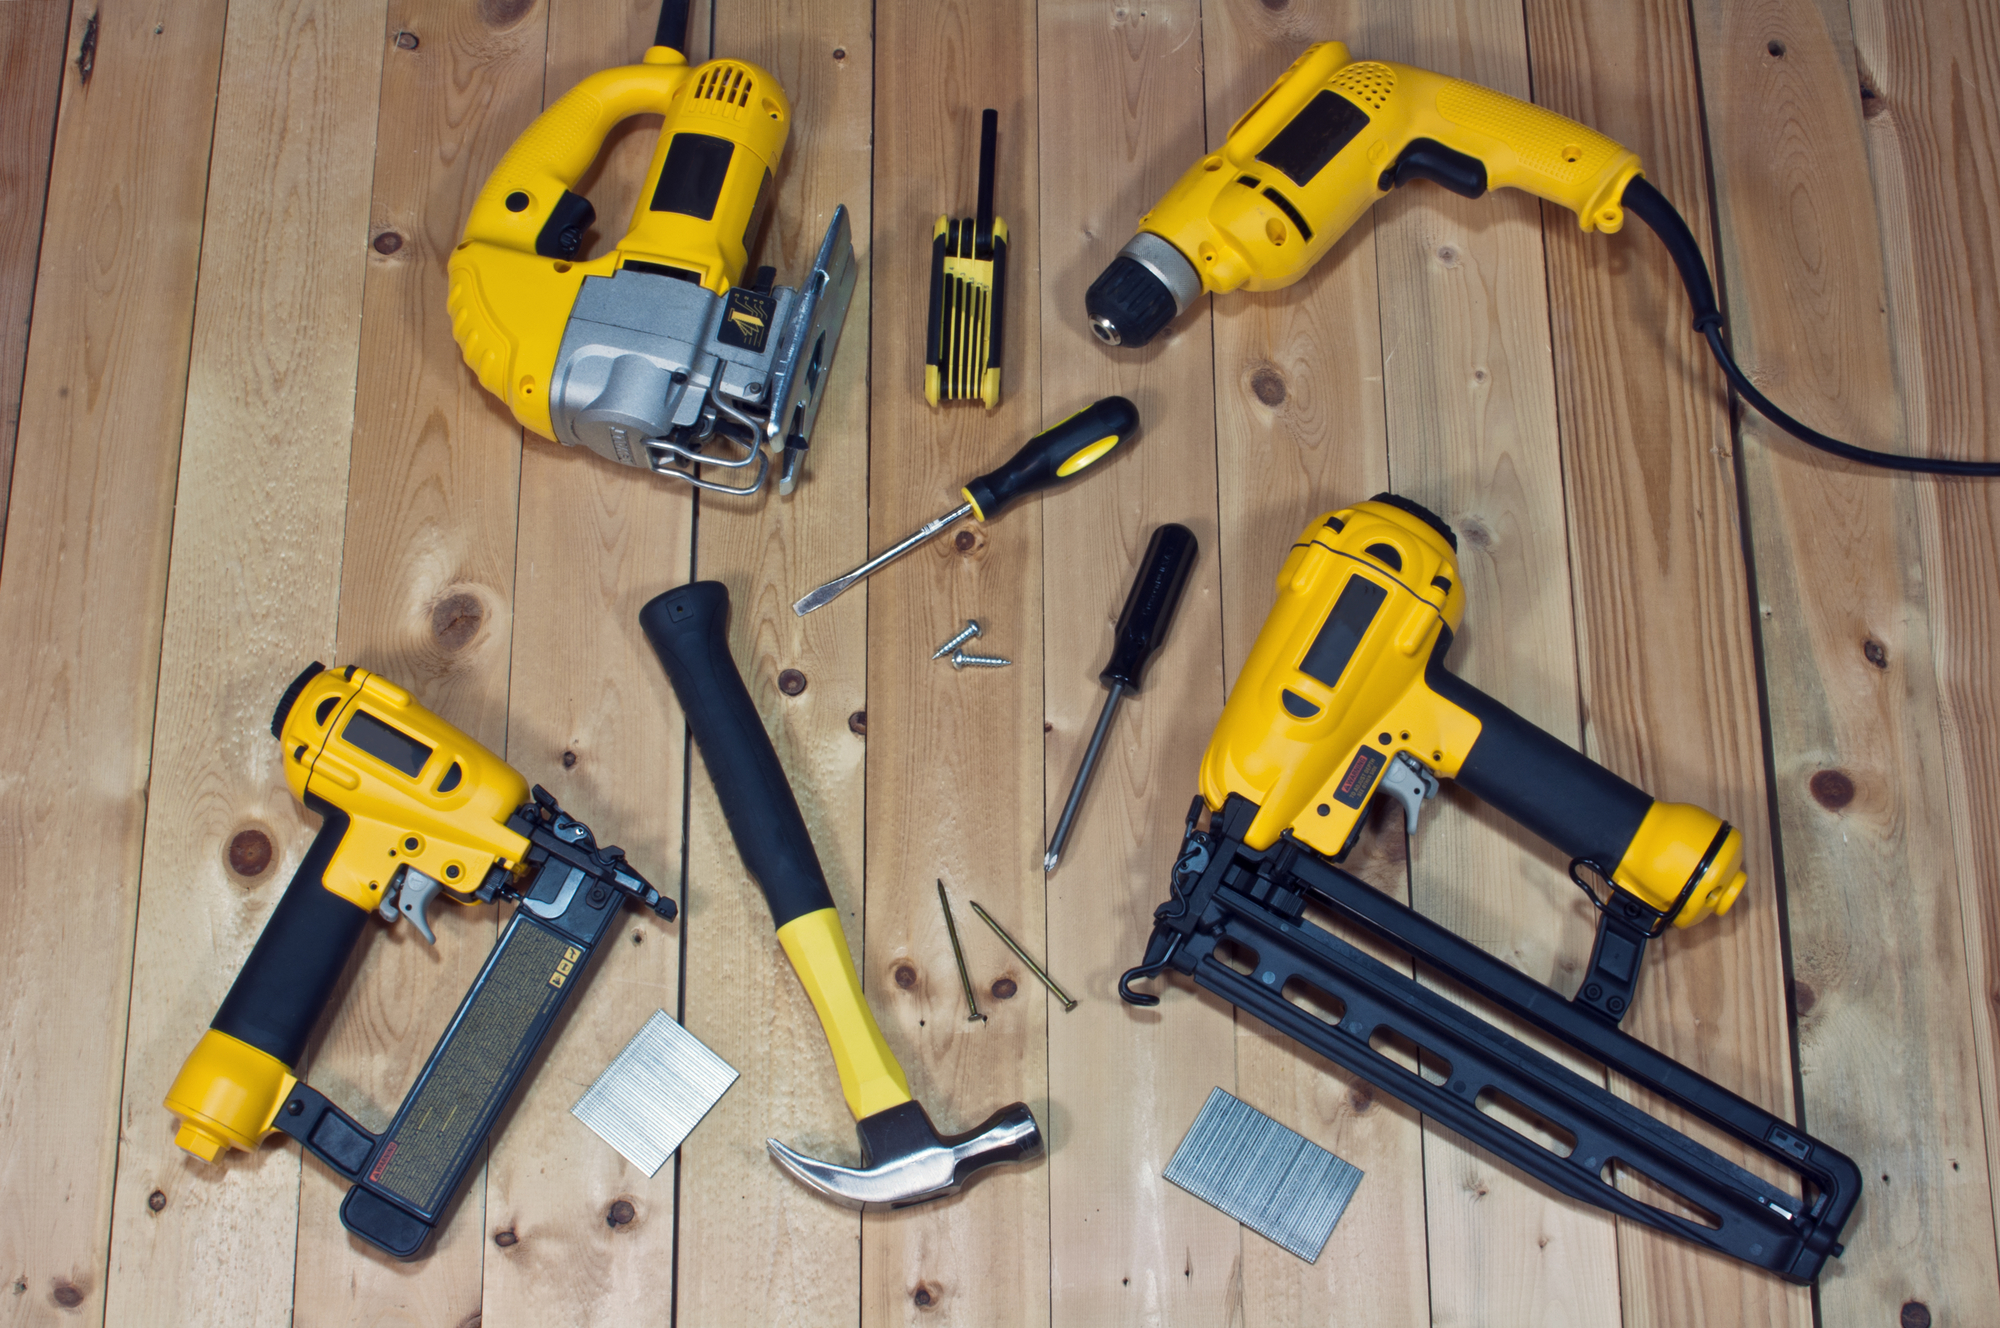 3 Helpful Tips for Getting the Most out of Your Power Tools - Montgomery's  Building Supplies Inc. - Warsaw | NearSay